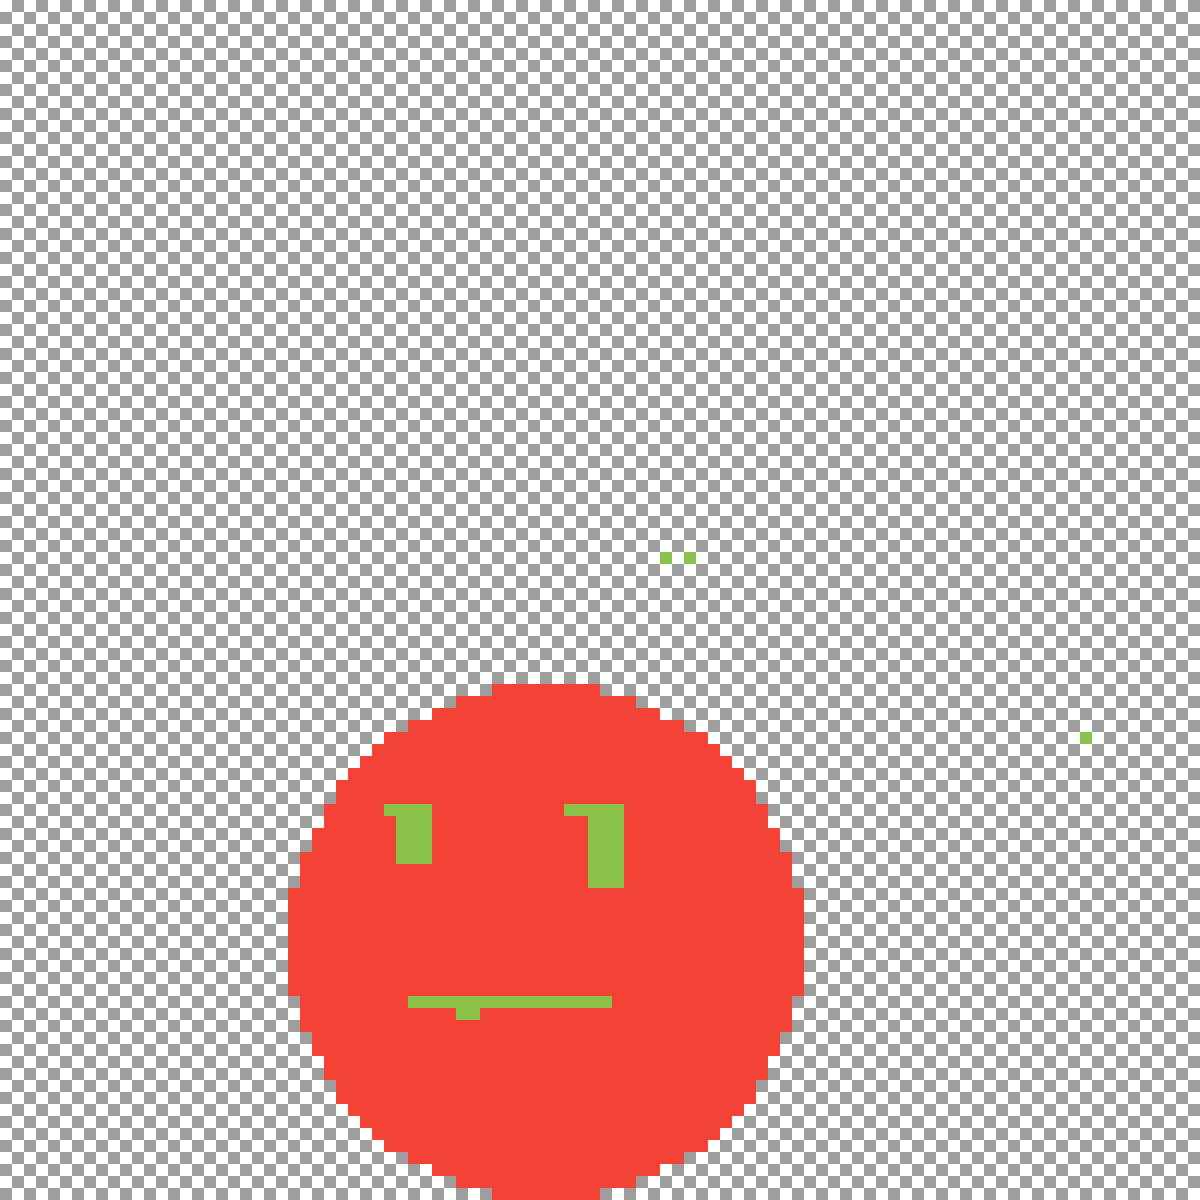 red ball 4 by yeetboi12346